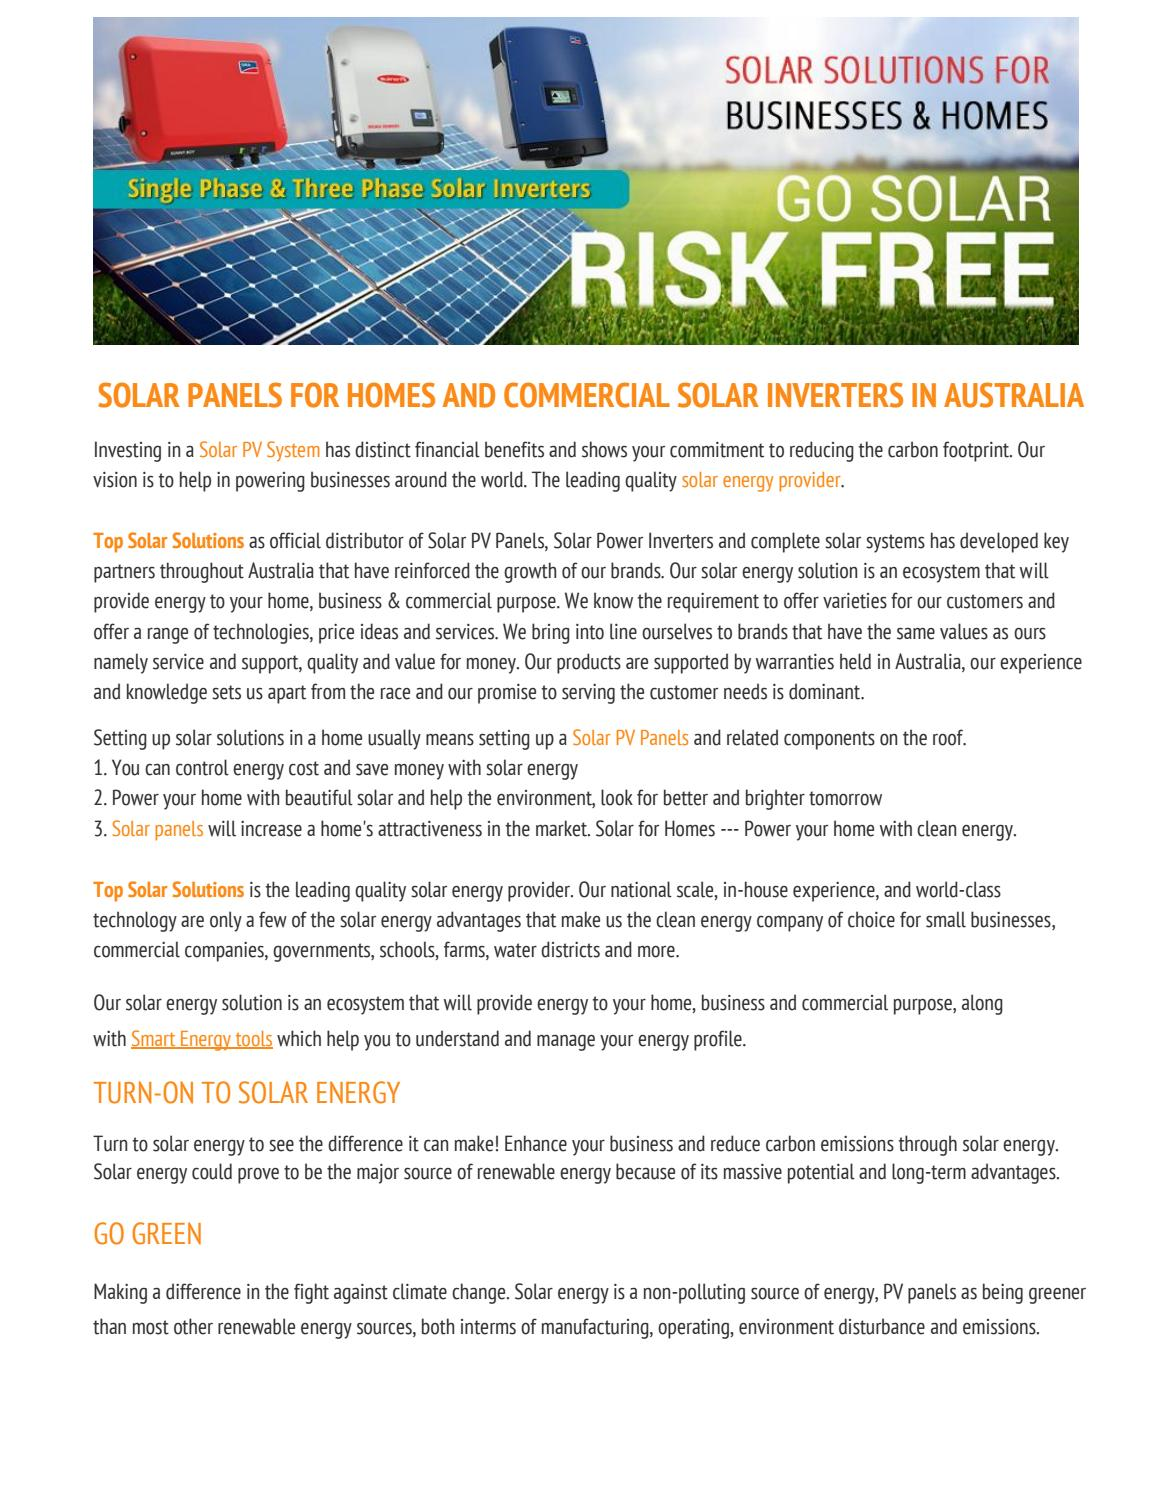 Home To Go Australia Solar Panels For Homes And Commercial Solar Inverters In Australia